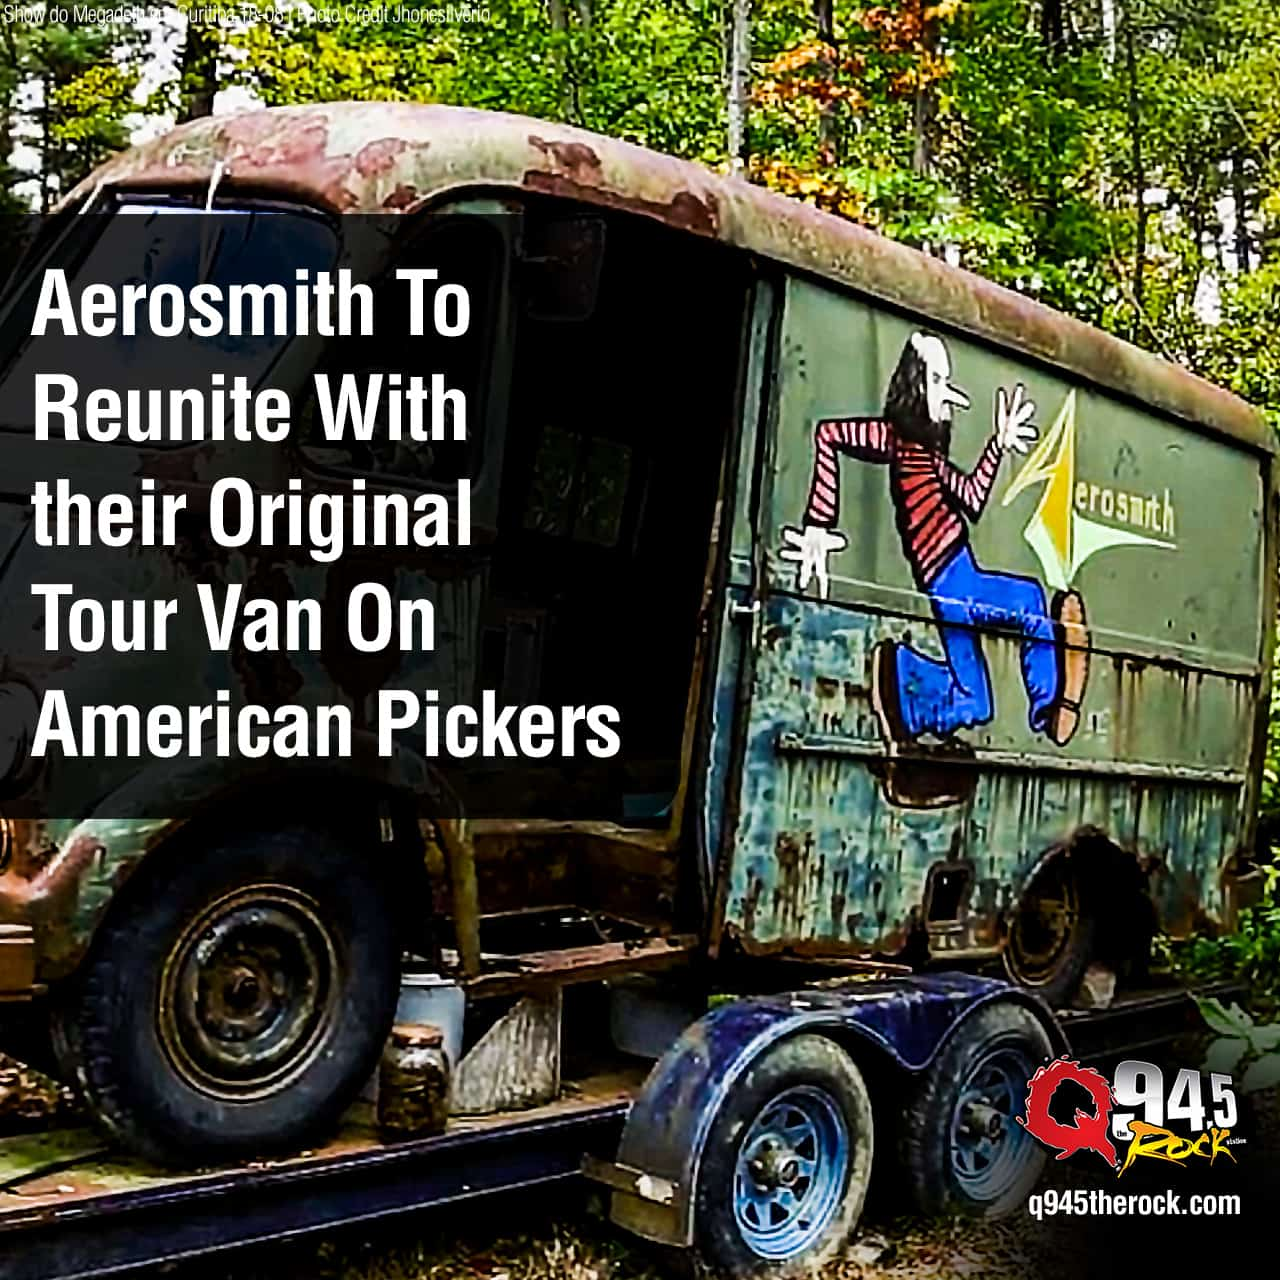 Aerosmith To Reunite With their Original Tour Van On American Pickers